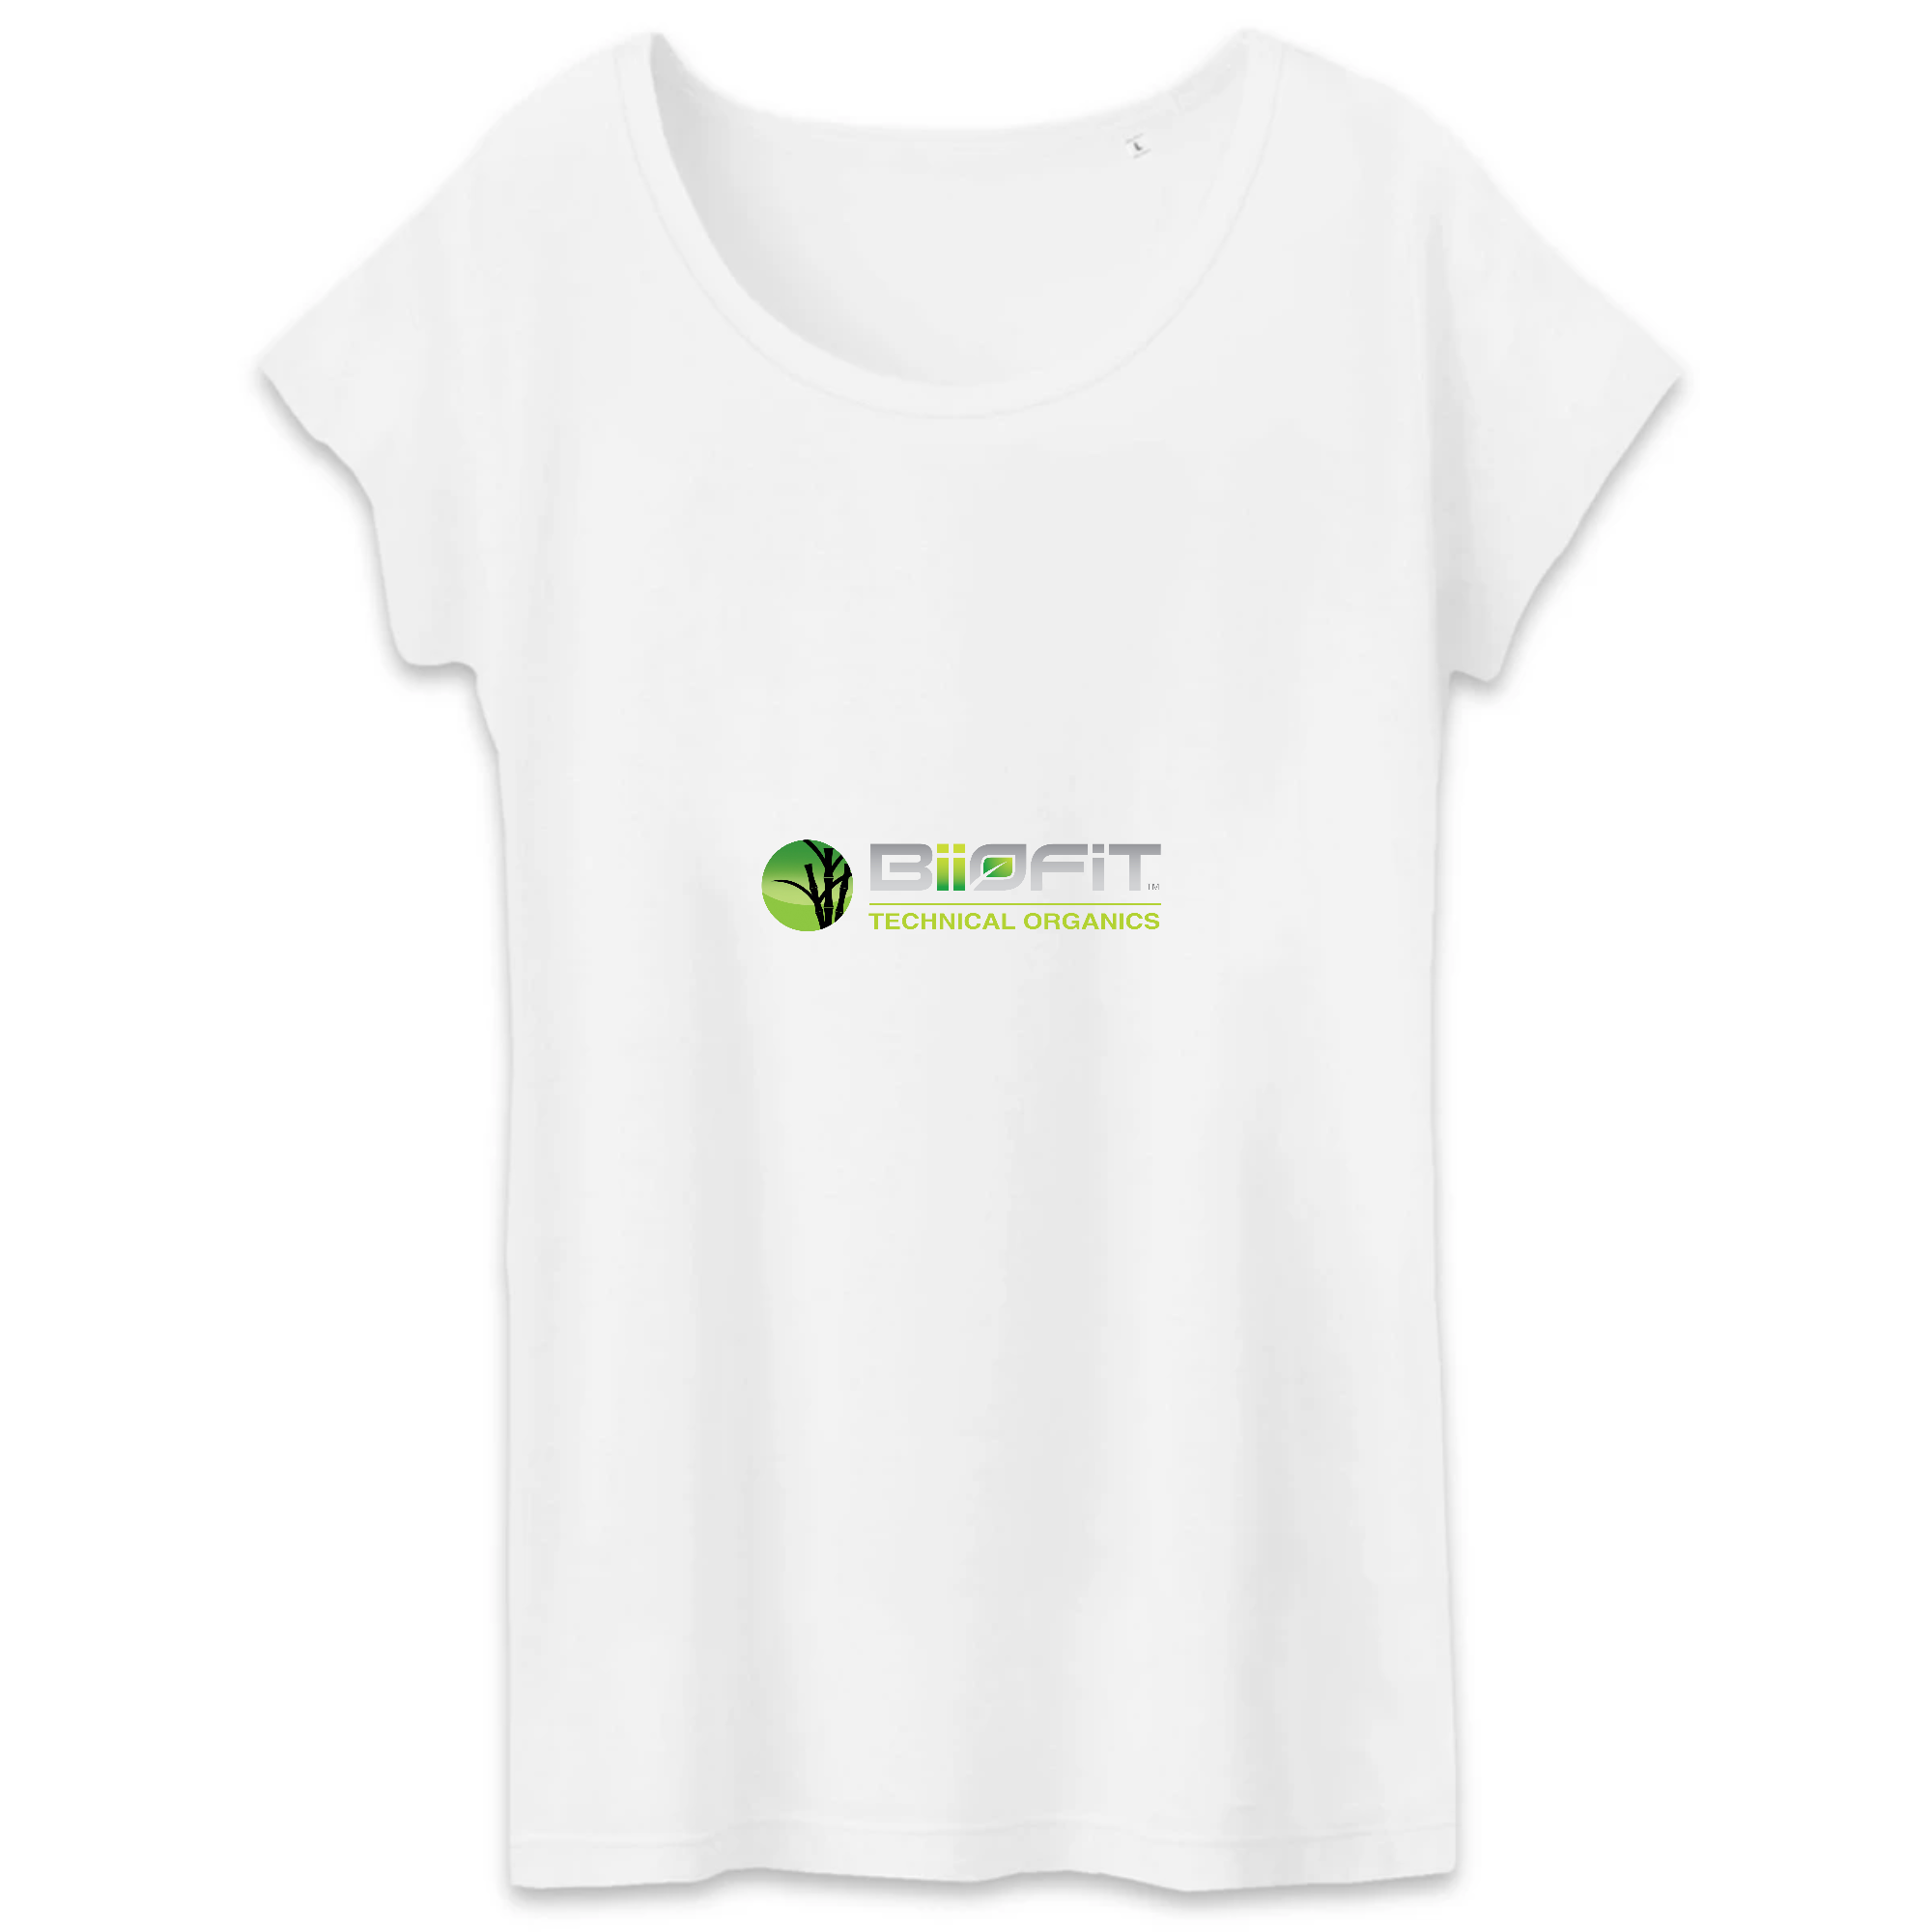 WOMEN T-SHIRT - 100% ORGANIC COTTON - TW043